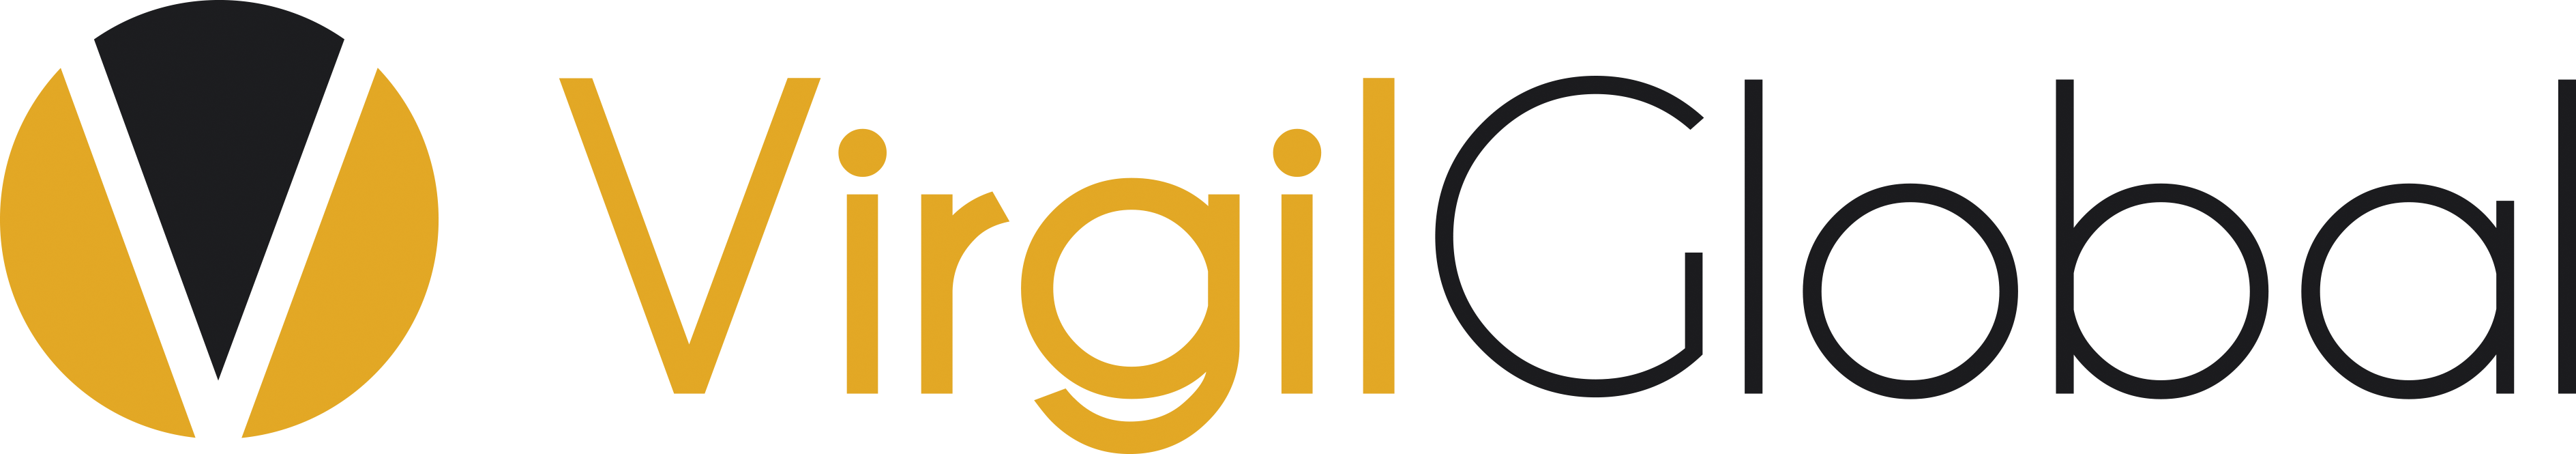 Virgil Global logo